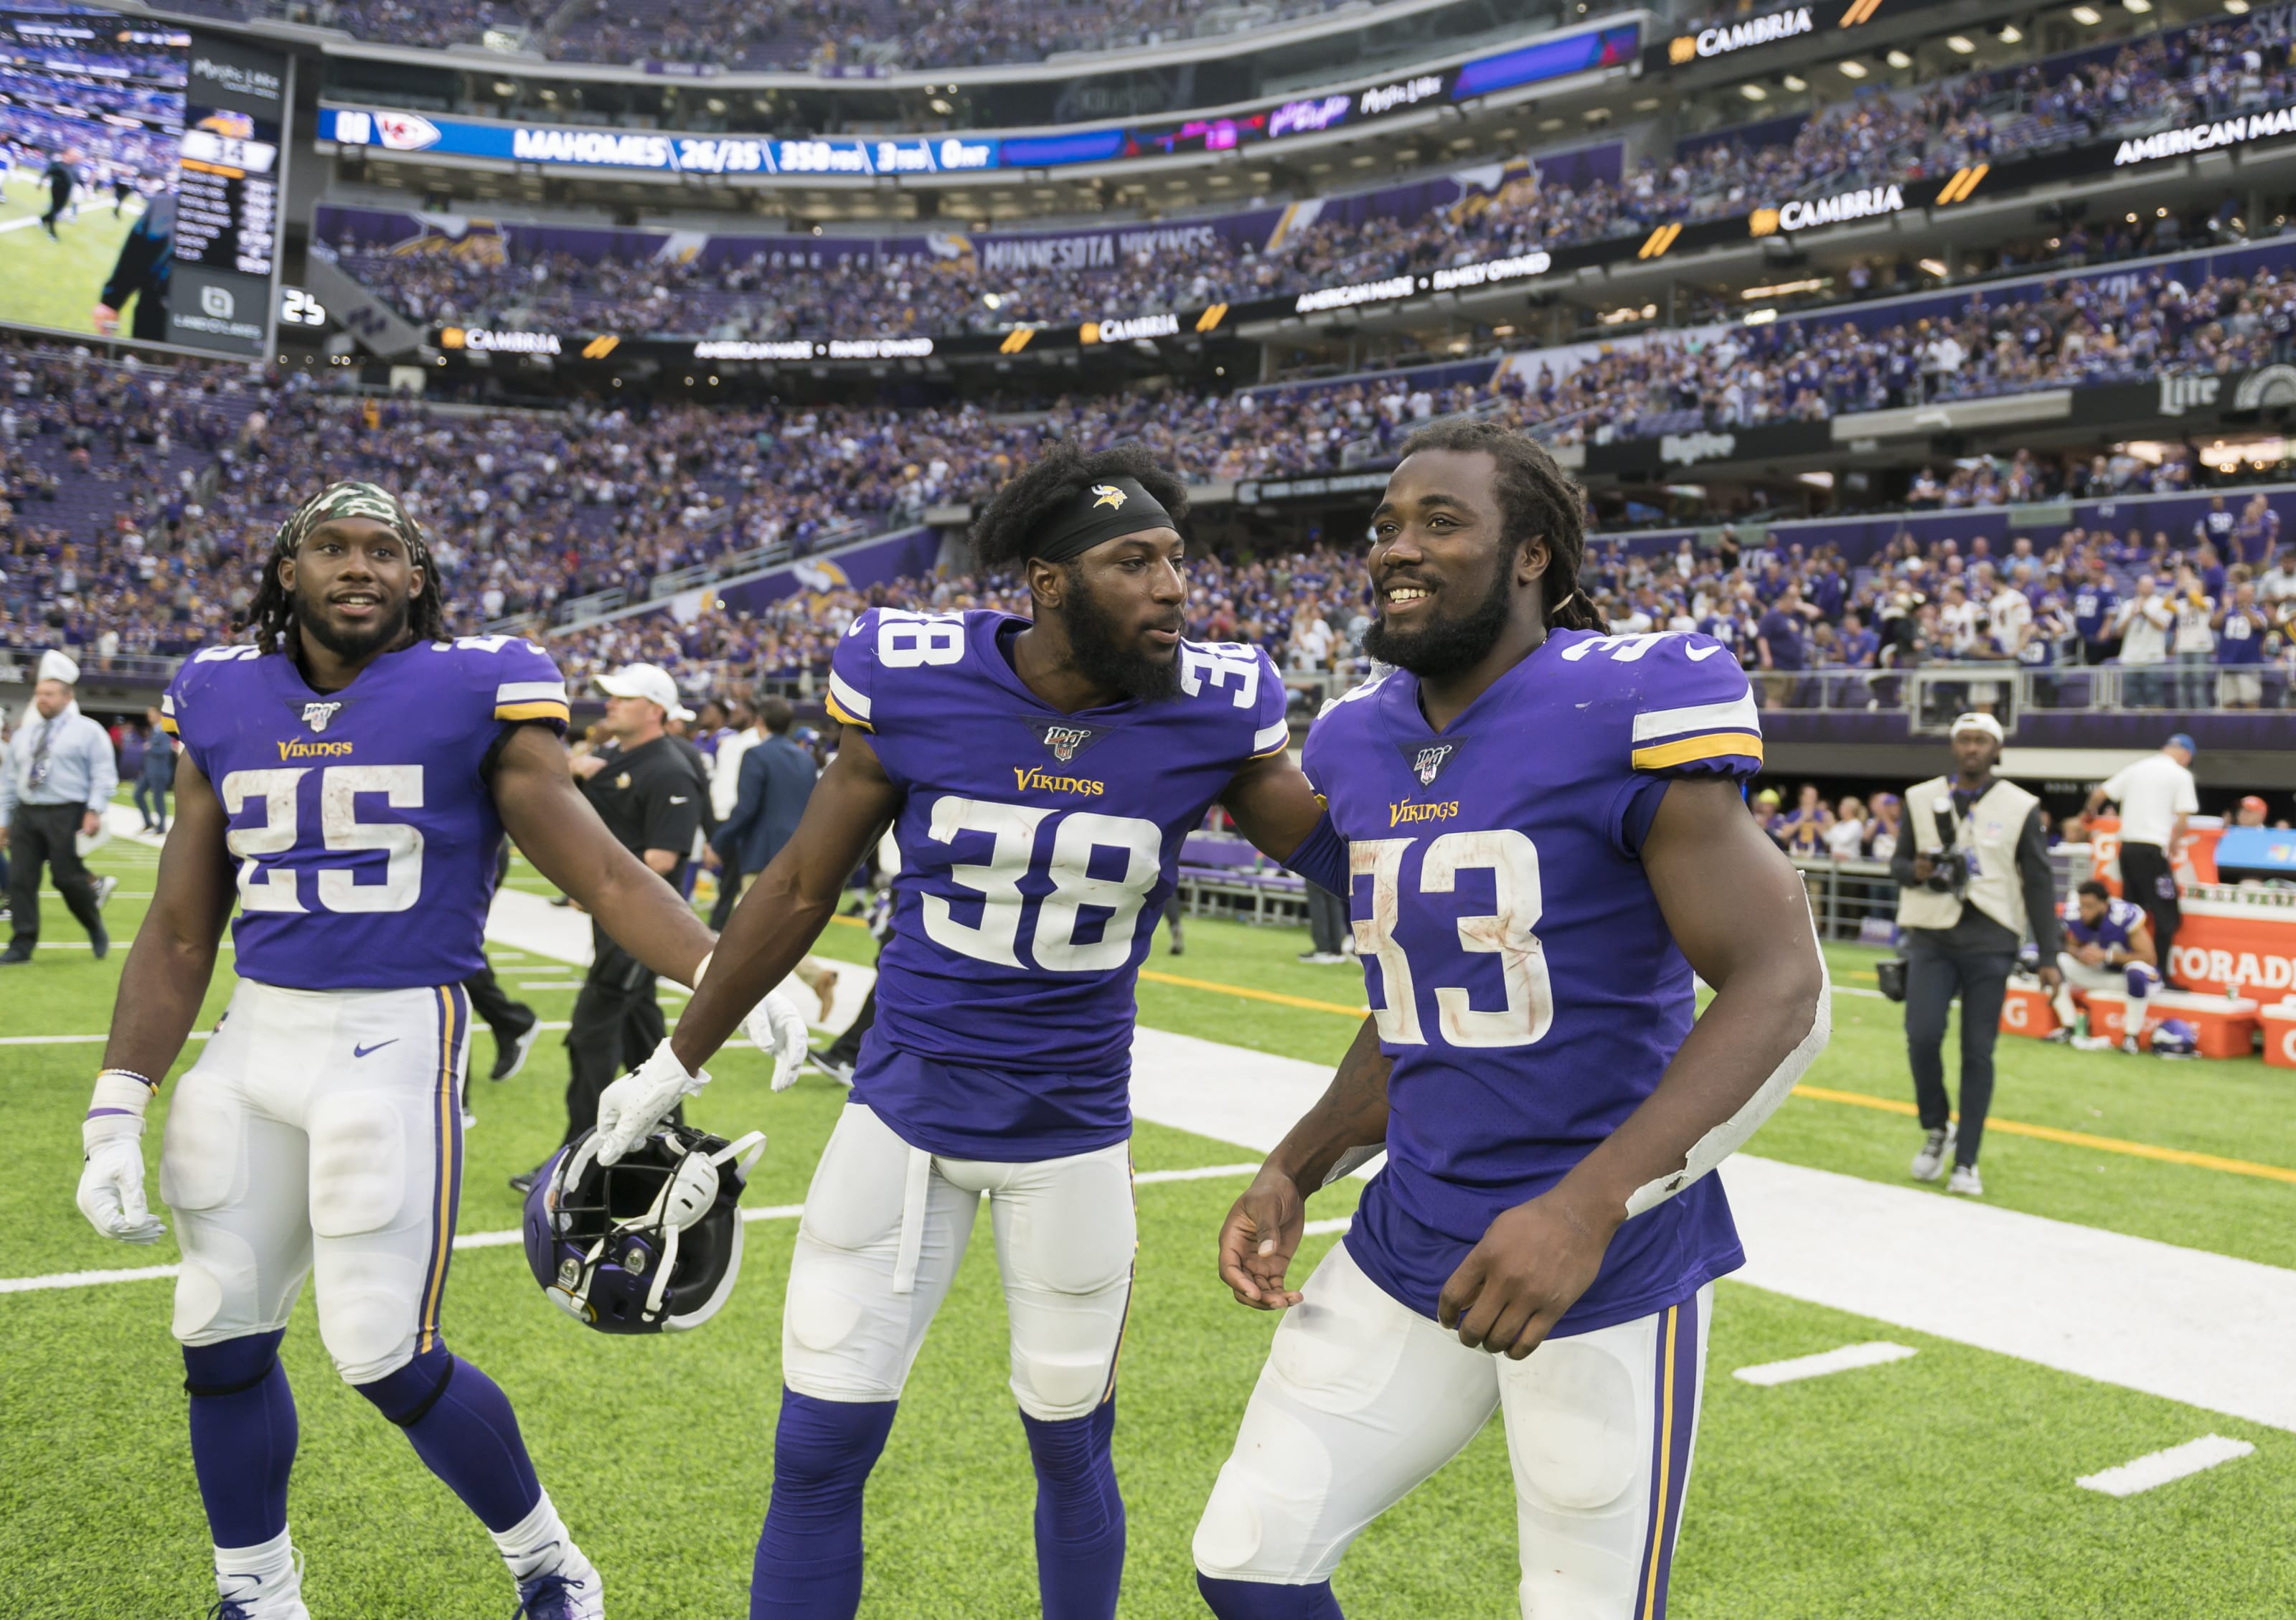 MINNEAPOLIS, MN - SEPTEMBER 22: Alexander Mattison #25, Kris Boyd #38, and Dalvin Cook #33 of the Minnesota Vikings take the field after the game against the Oakland Raiders at U.S. Bank Stadium on September 22, 2019 in Minneapolis, Minnesota. The Vikings defeated the Raiders 34-14. (Photo by Stephen Maturen/Getty Images)